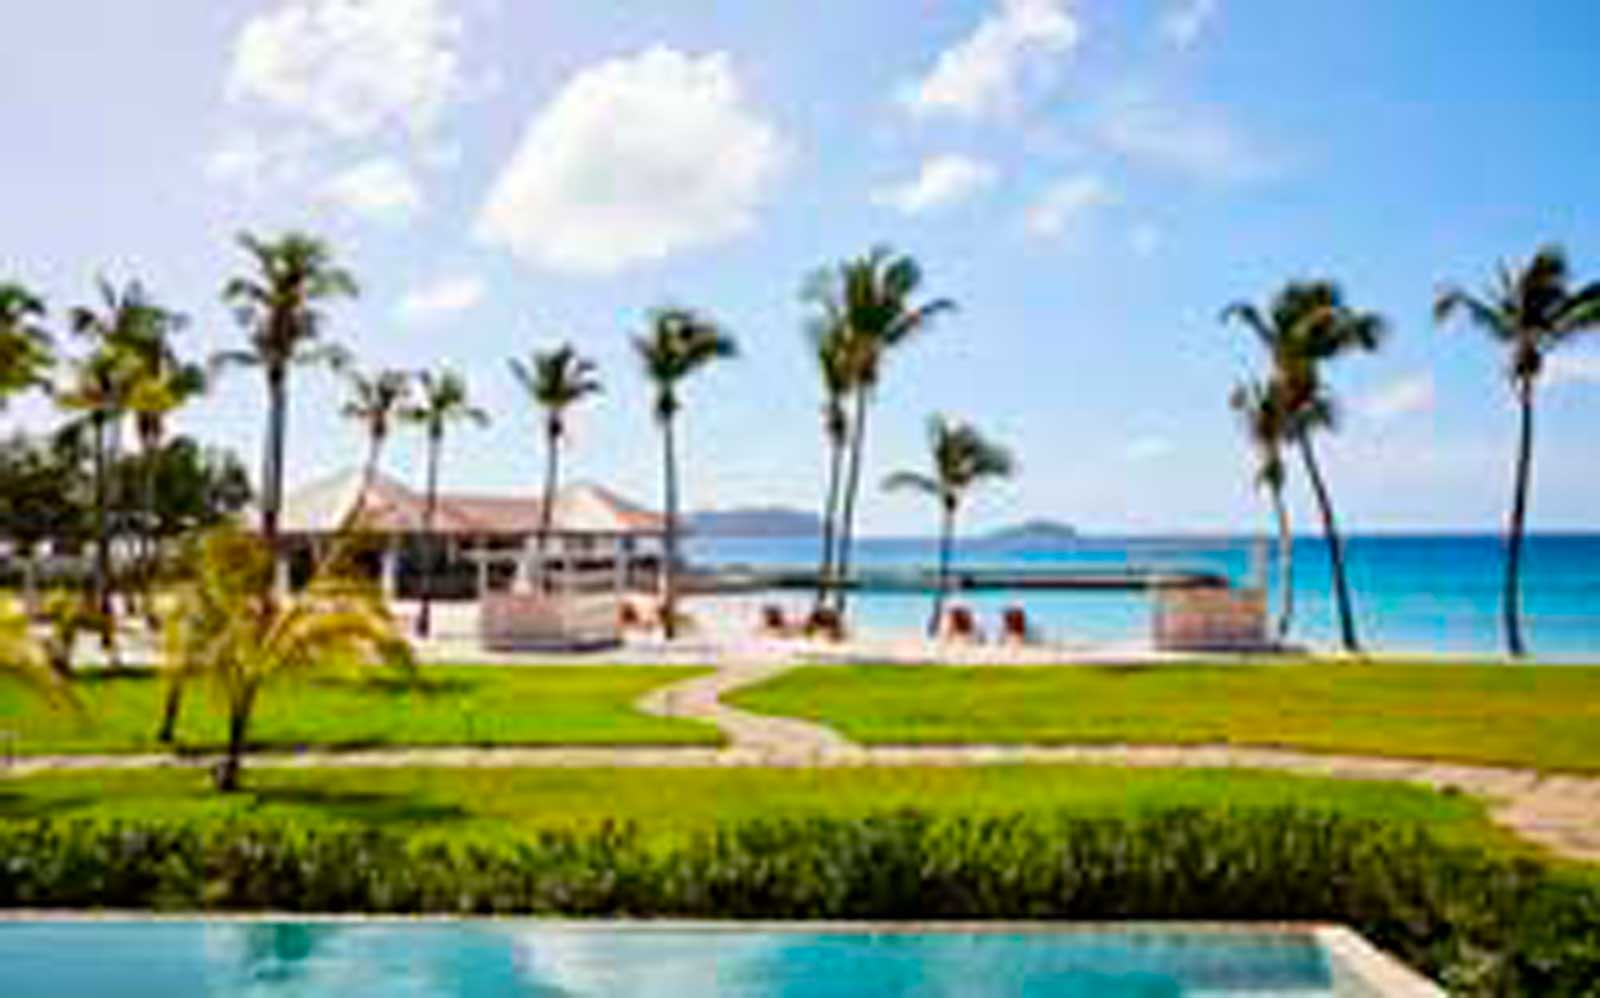 The Liming pool and beach, Bequia, Grenadines